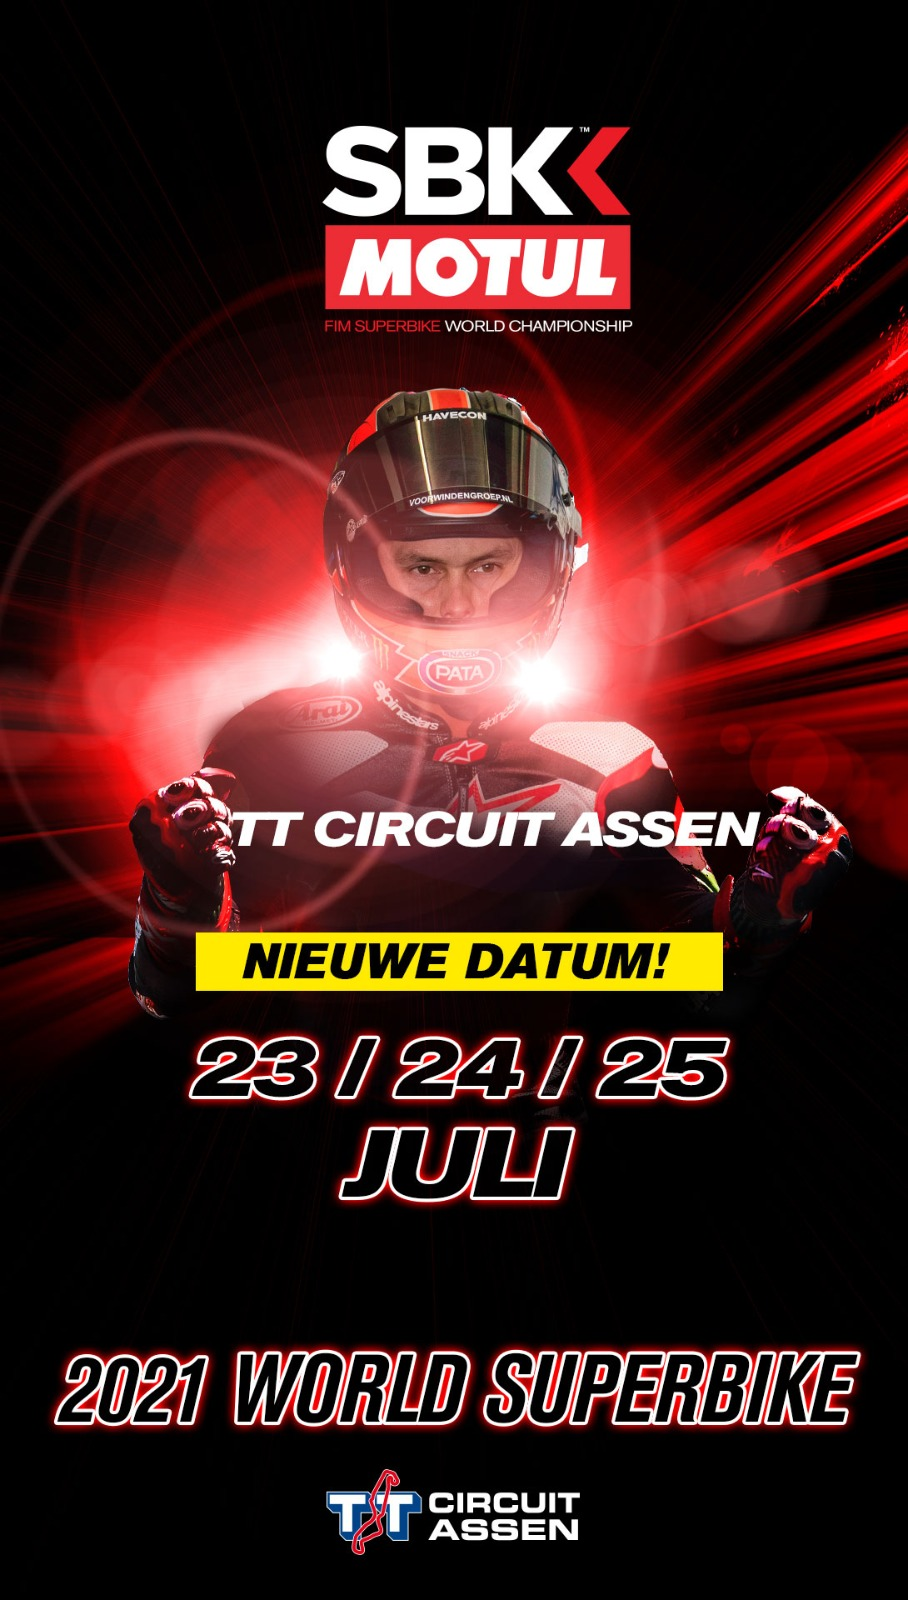 World Superbike TT Circuit Assen 2021